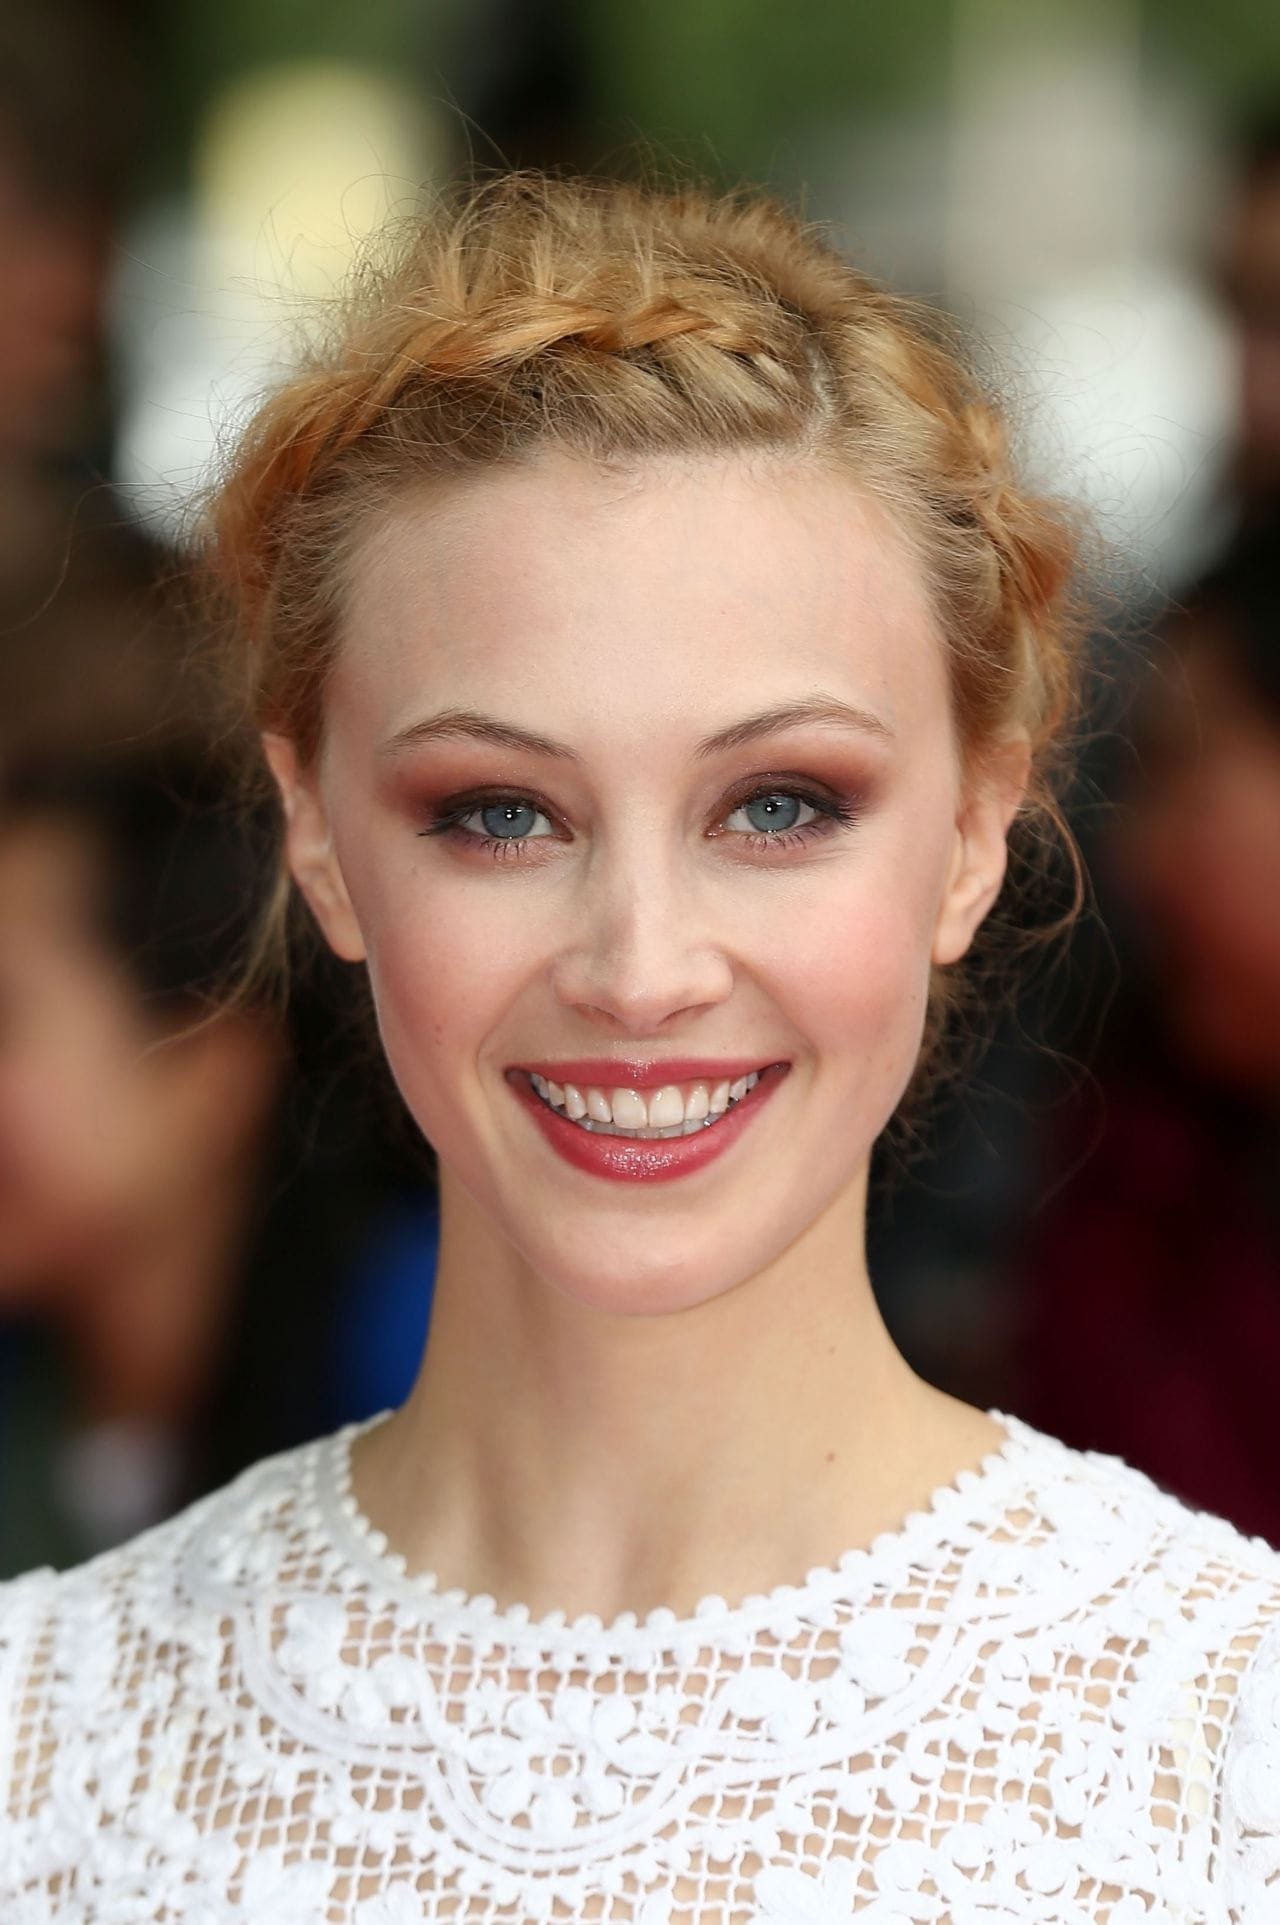 Sarah Gadons HQ wallpapers